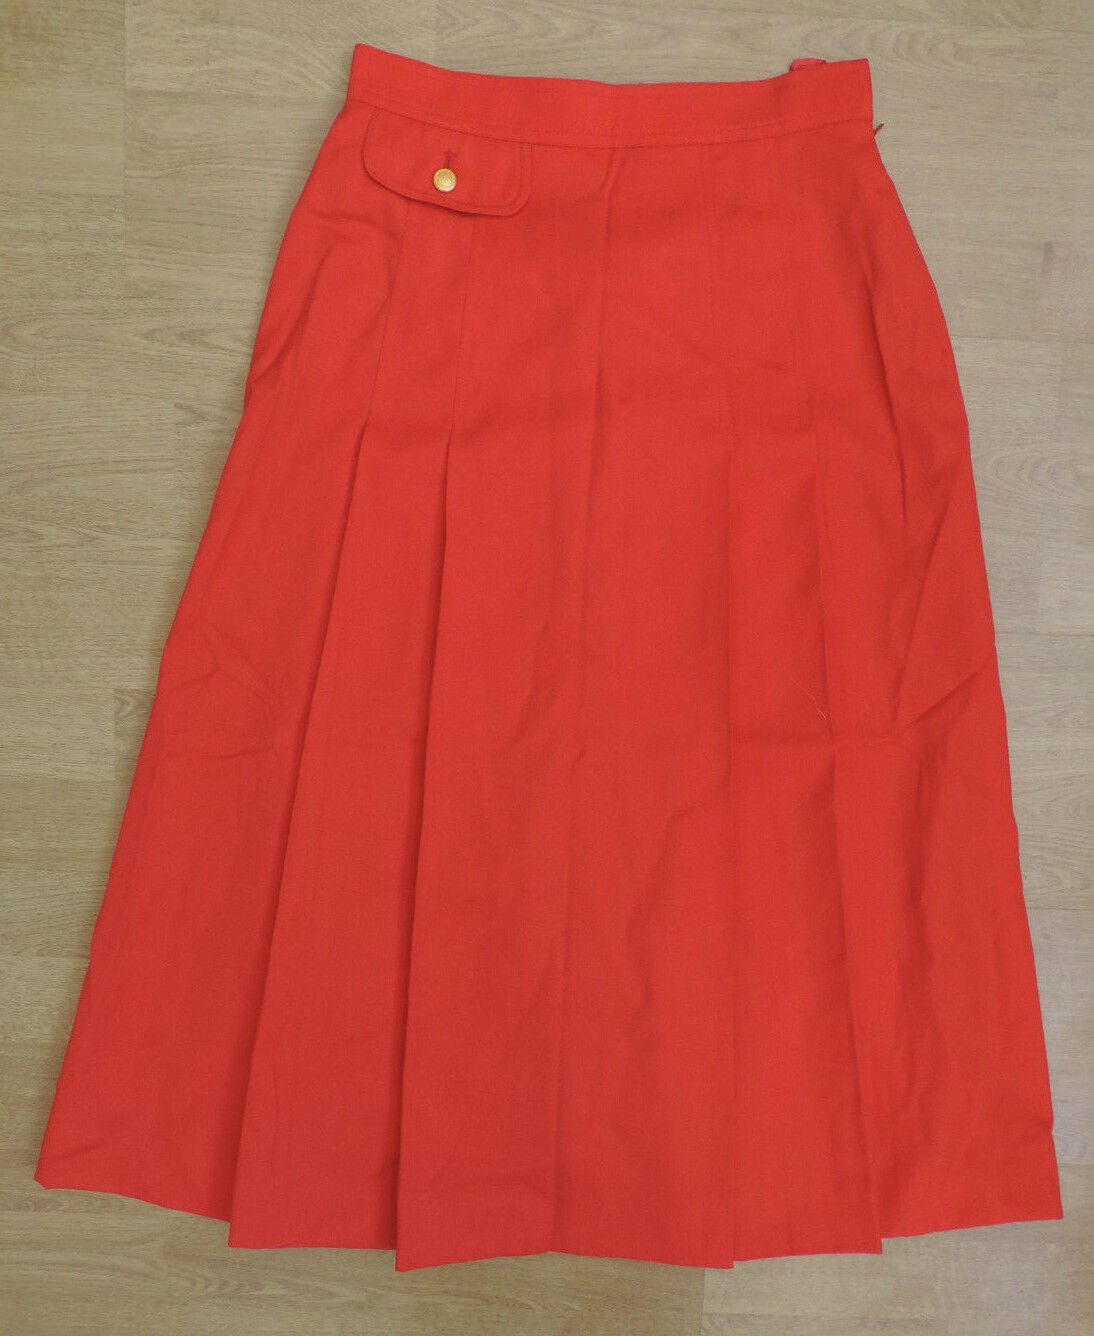 Women's Vintage Aquascutum Peach Pink Salmon Red A Line Skirt H2-B15